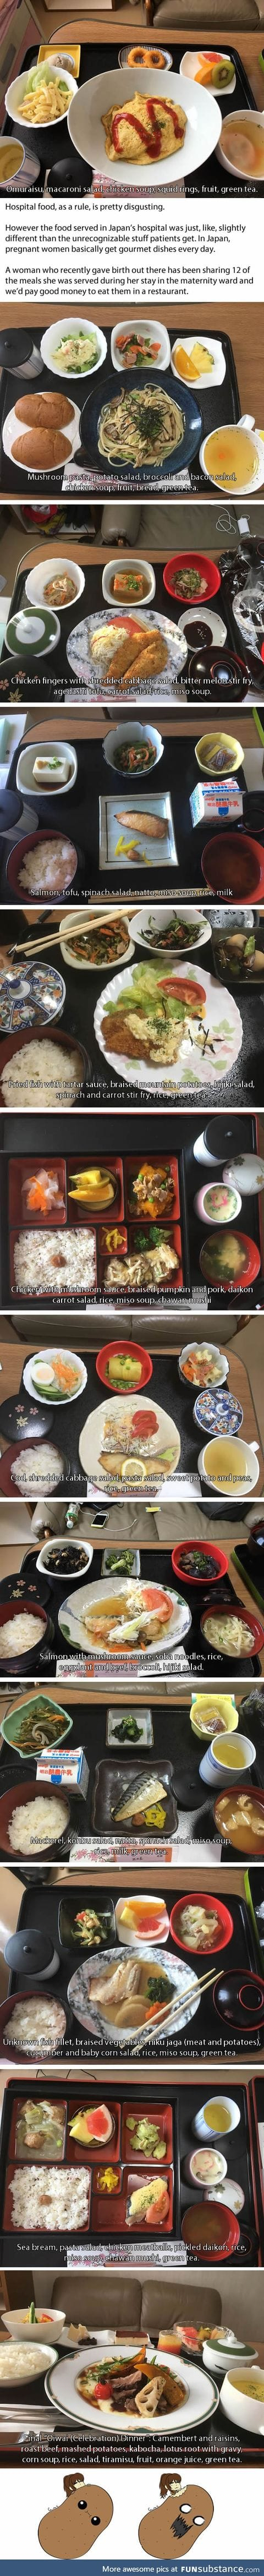 Woman Who Gave Birth In Japan Shares the Delicious Food She Had In The Hospital